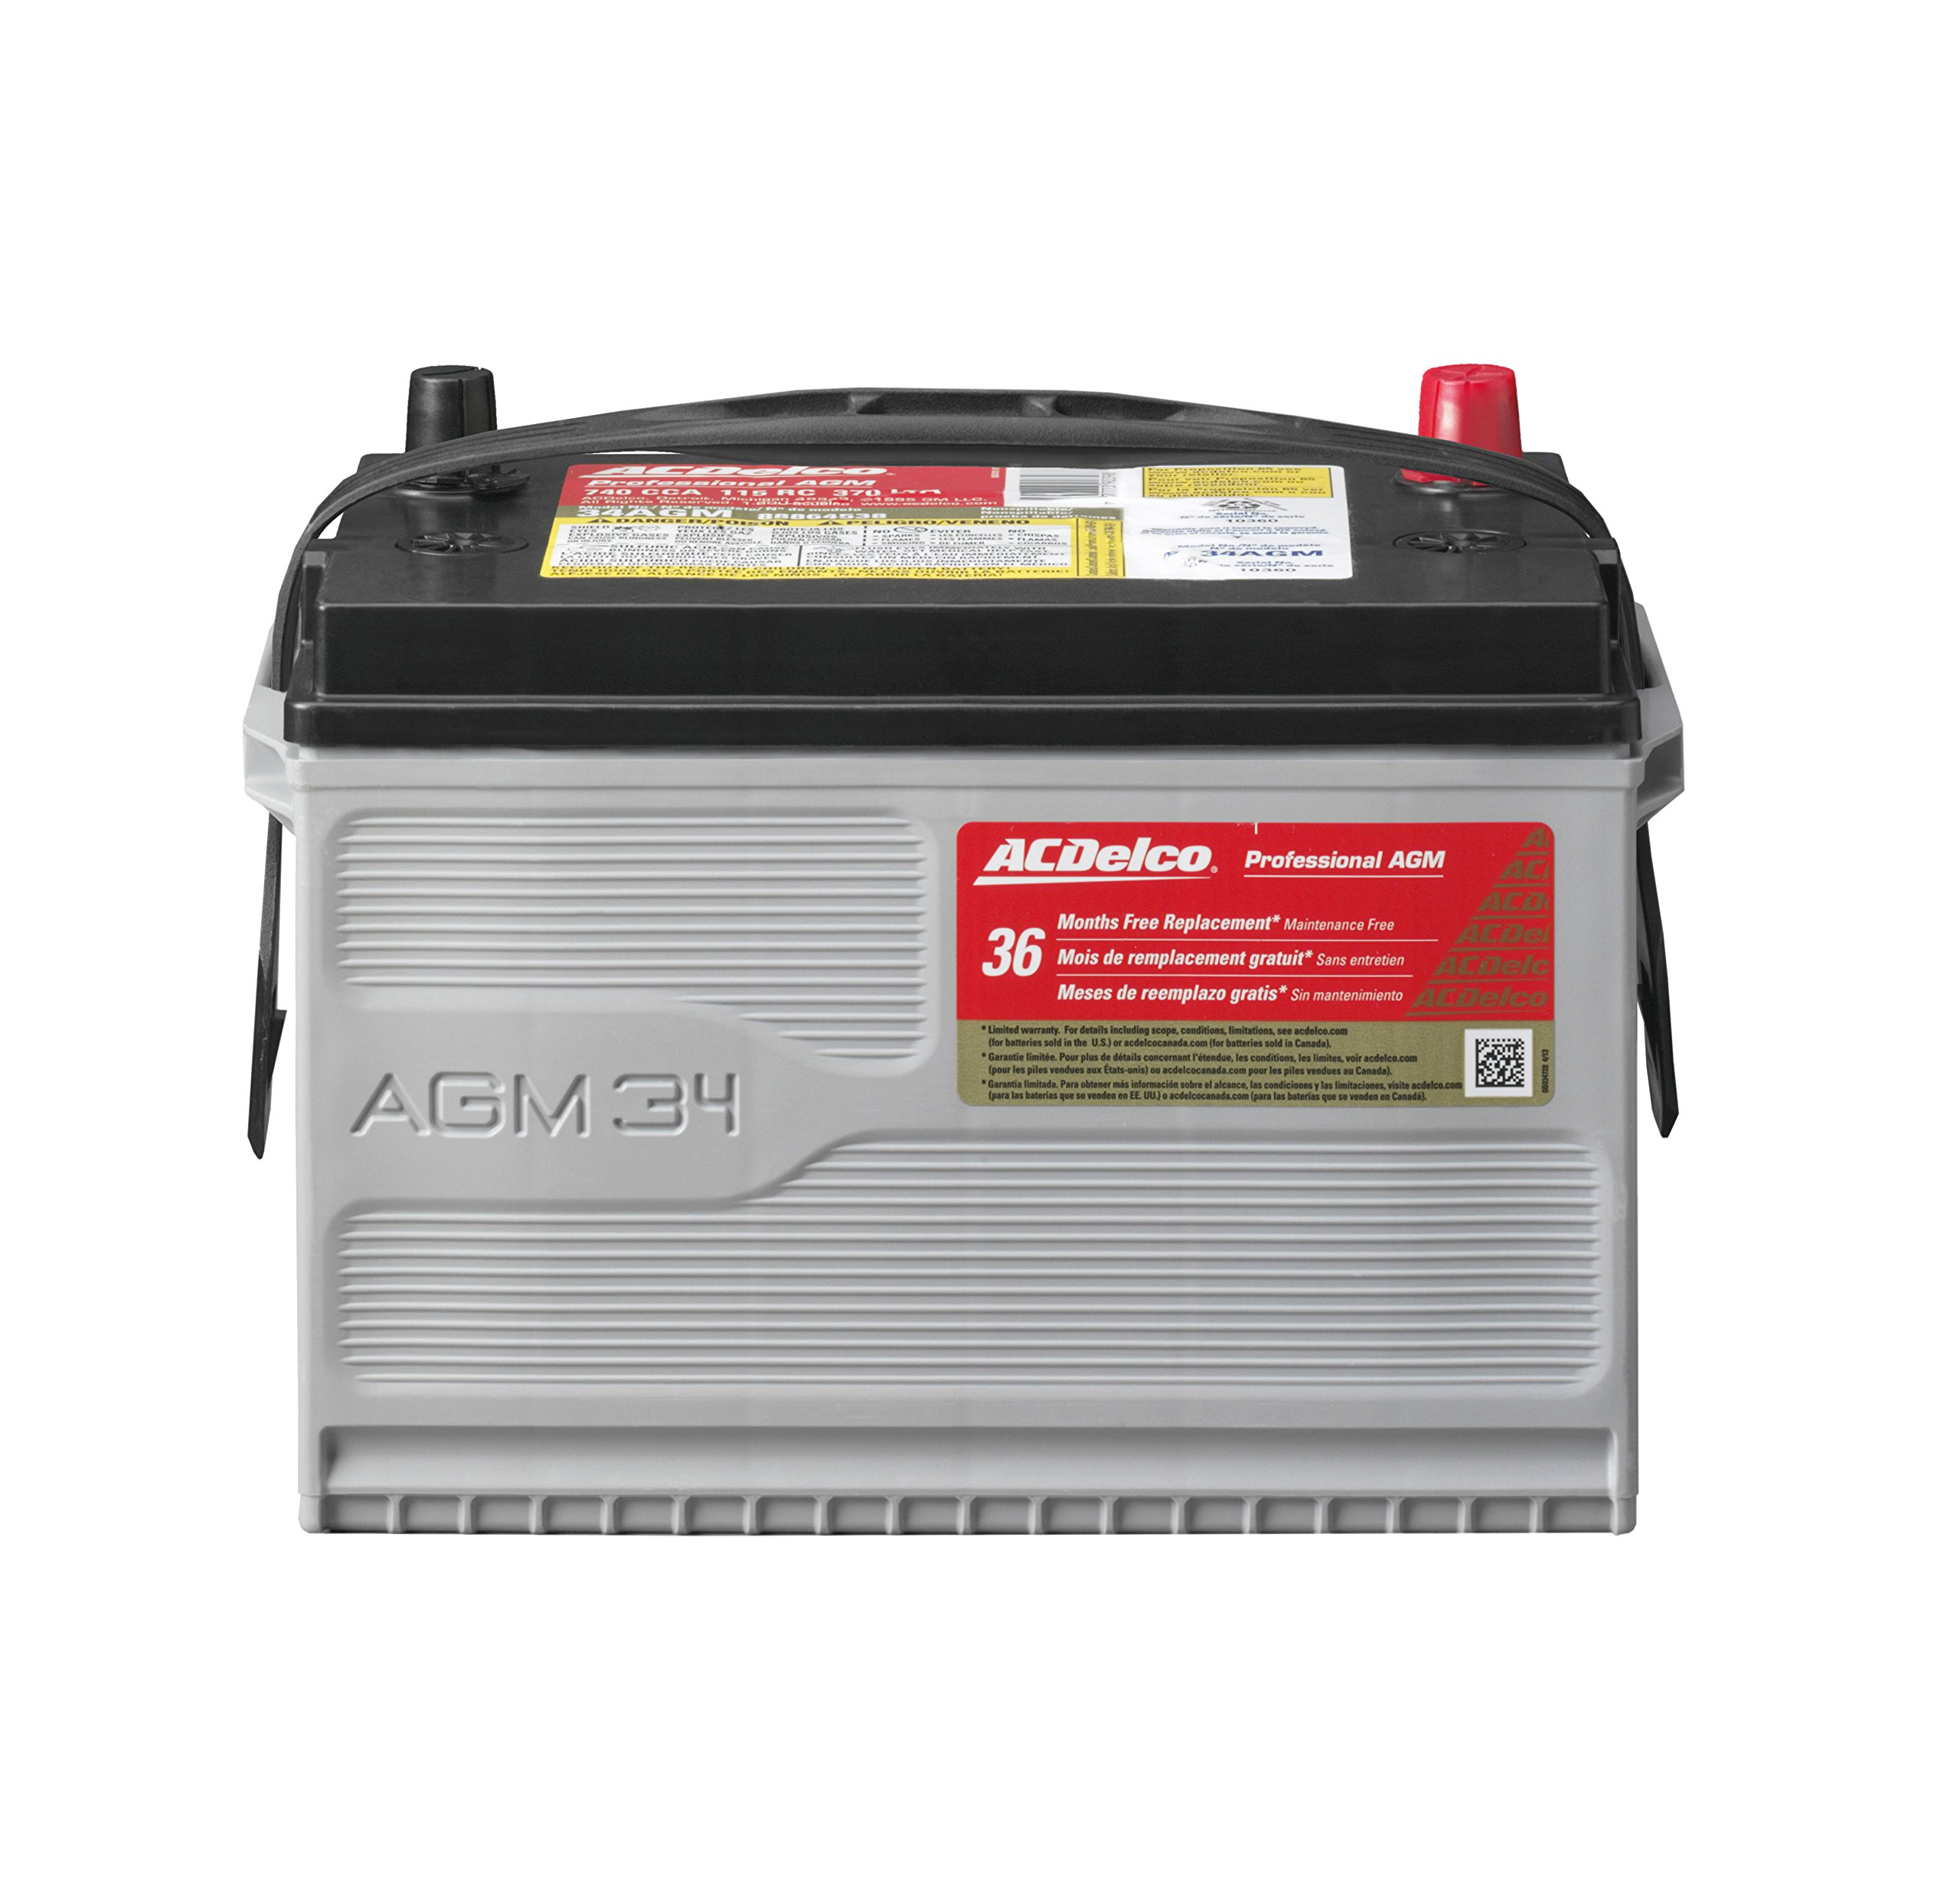 ACDelco 34AGM Professional AGM Automotive BCI Group 34 Battery by ACDelco